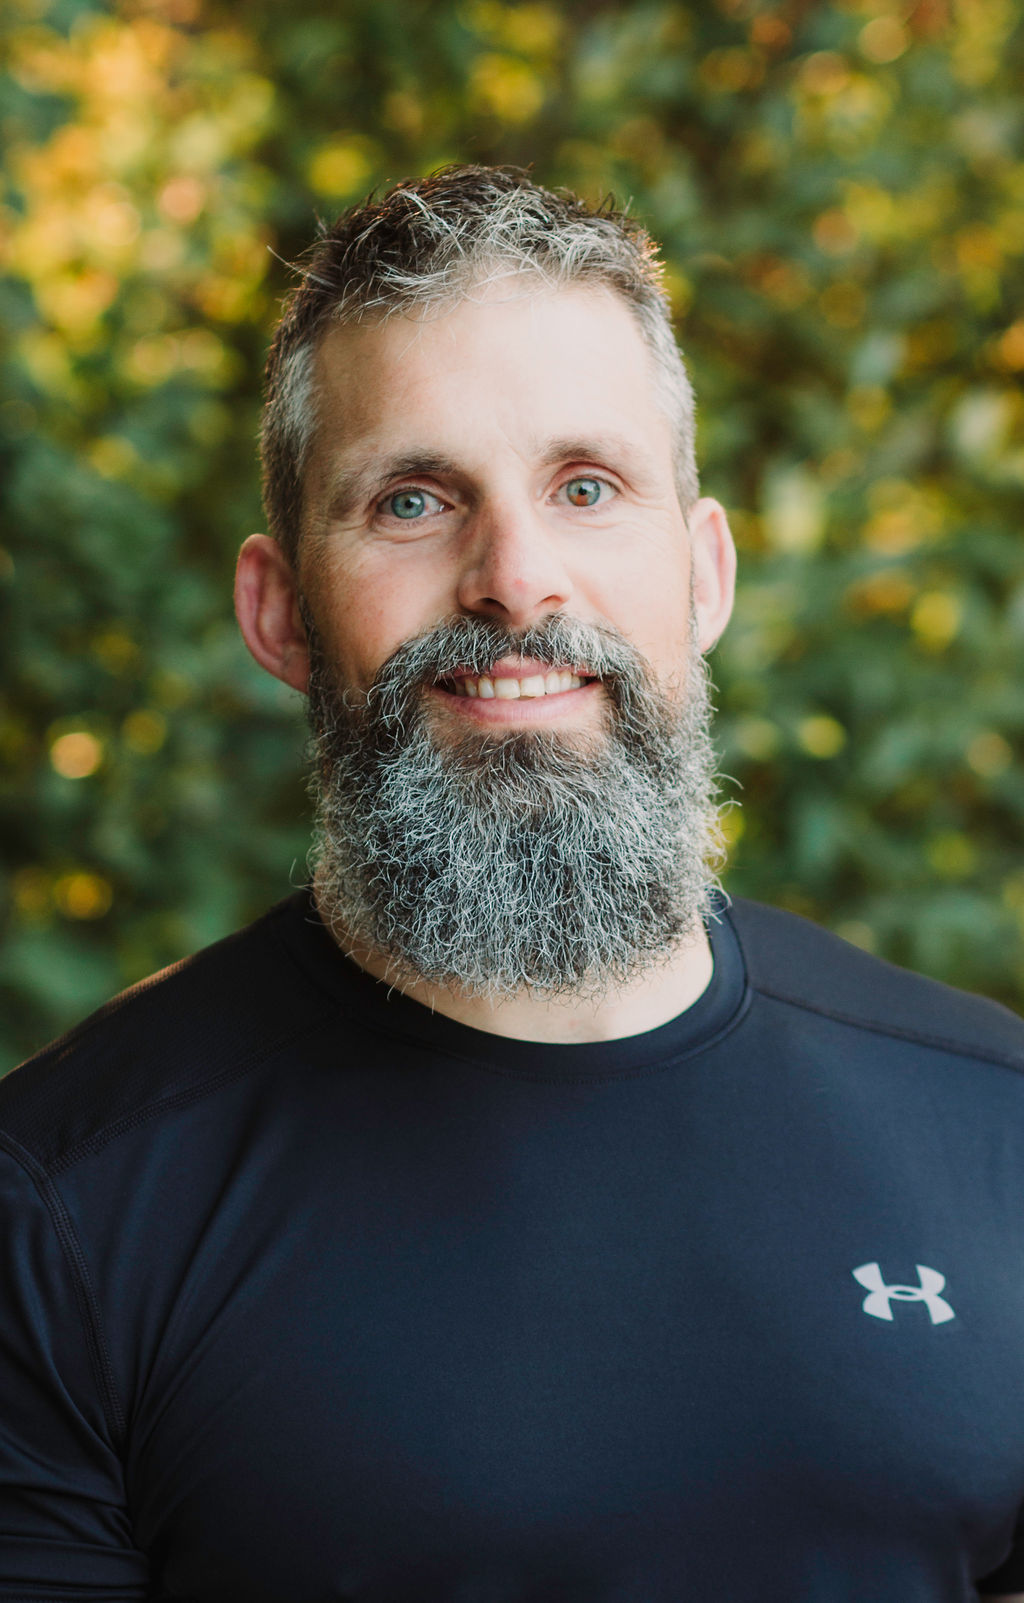 """Lee Barloon CF-L2 - Bonus Credentials: CrossFit (CF) Gymnastics Certificate, CF Rowing CertificateDay-Job: Owner of Frontier Exercise Equipment Repair, a Service Company Specializing in Exercise Equipment Installation and ServiceBeen """"CrossFit-ing"""" since 2010Why Turnagain CrossFit? THE AMAZING COMMUNITY!A few of my favorite things: A nice campfire with friends, enjoying a fresh cup coffee in the Morning, & helping people out (be it in the gym, for my business, or otherwise).When I'm not at CrossFit…I'm likely exploring AK via Snowmachine, Motorcycle, or Jeep; Mountain and Fat Tire biking; or just hanging at the house working on my vehicles."""